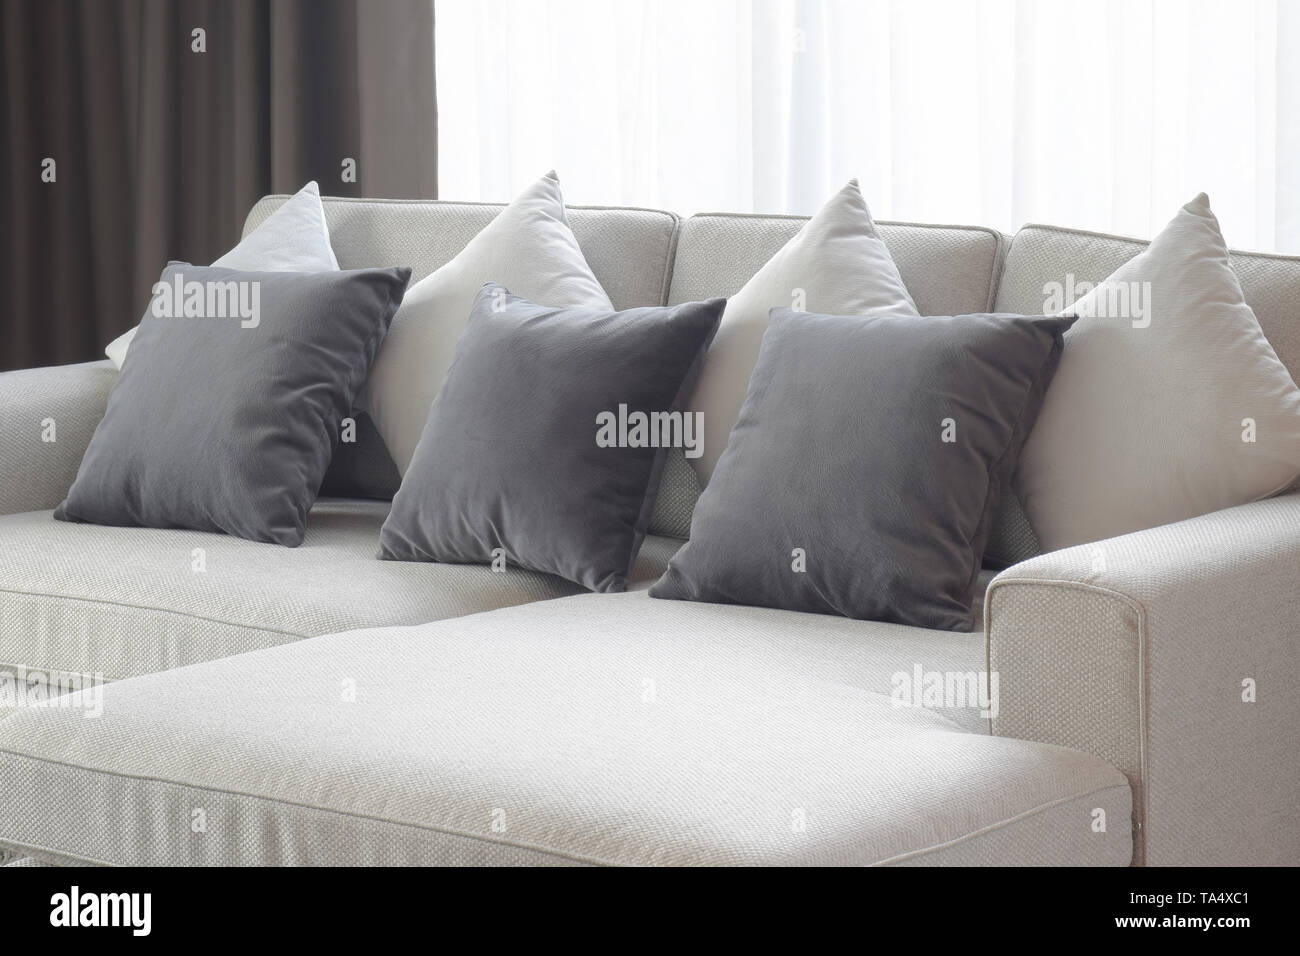 Two tone pillows lay on beige sofa in living room - Stock Image